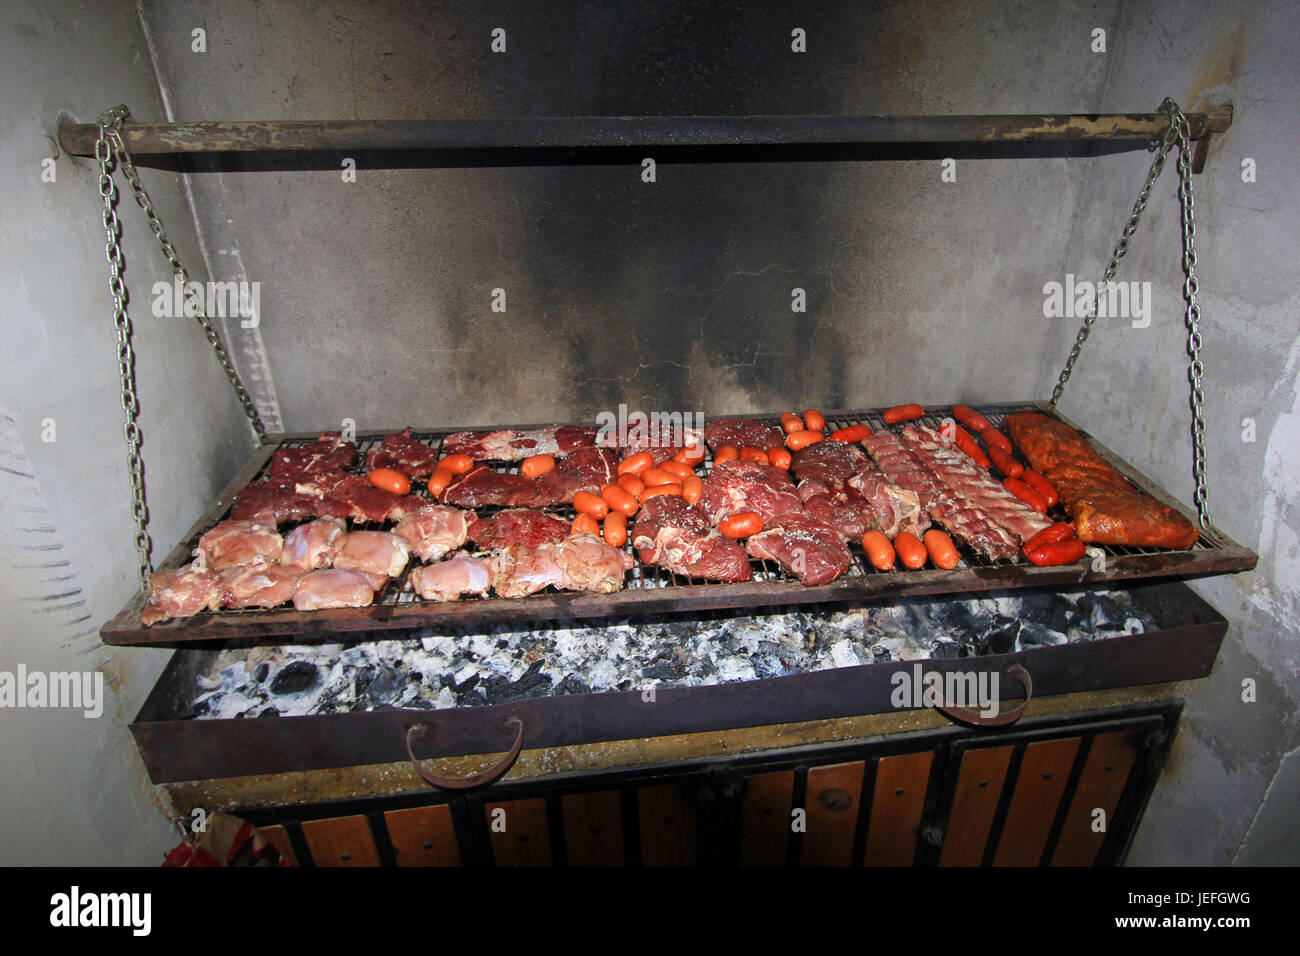 Typical argentinean parillada BBQ in Argentina or Chile - Stock Image